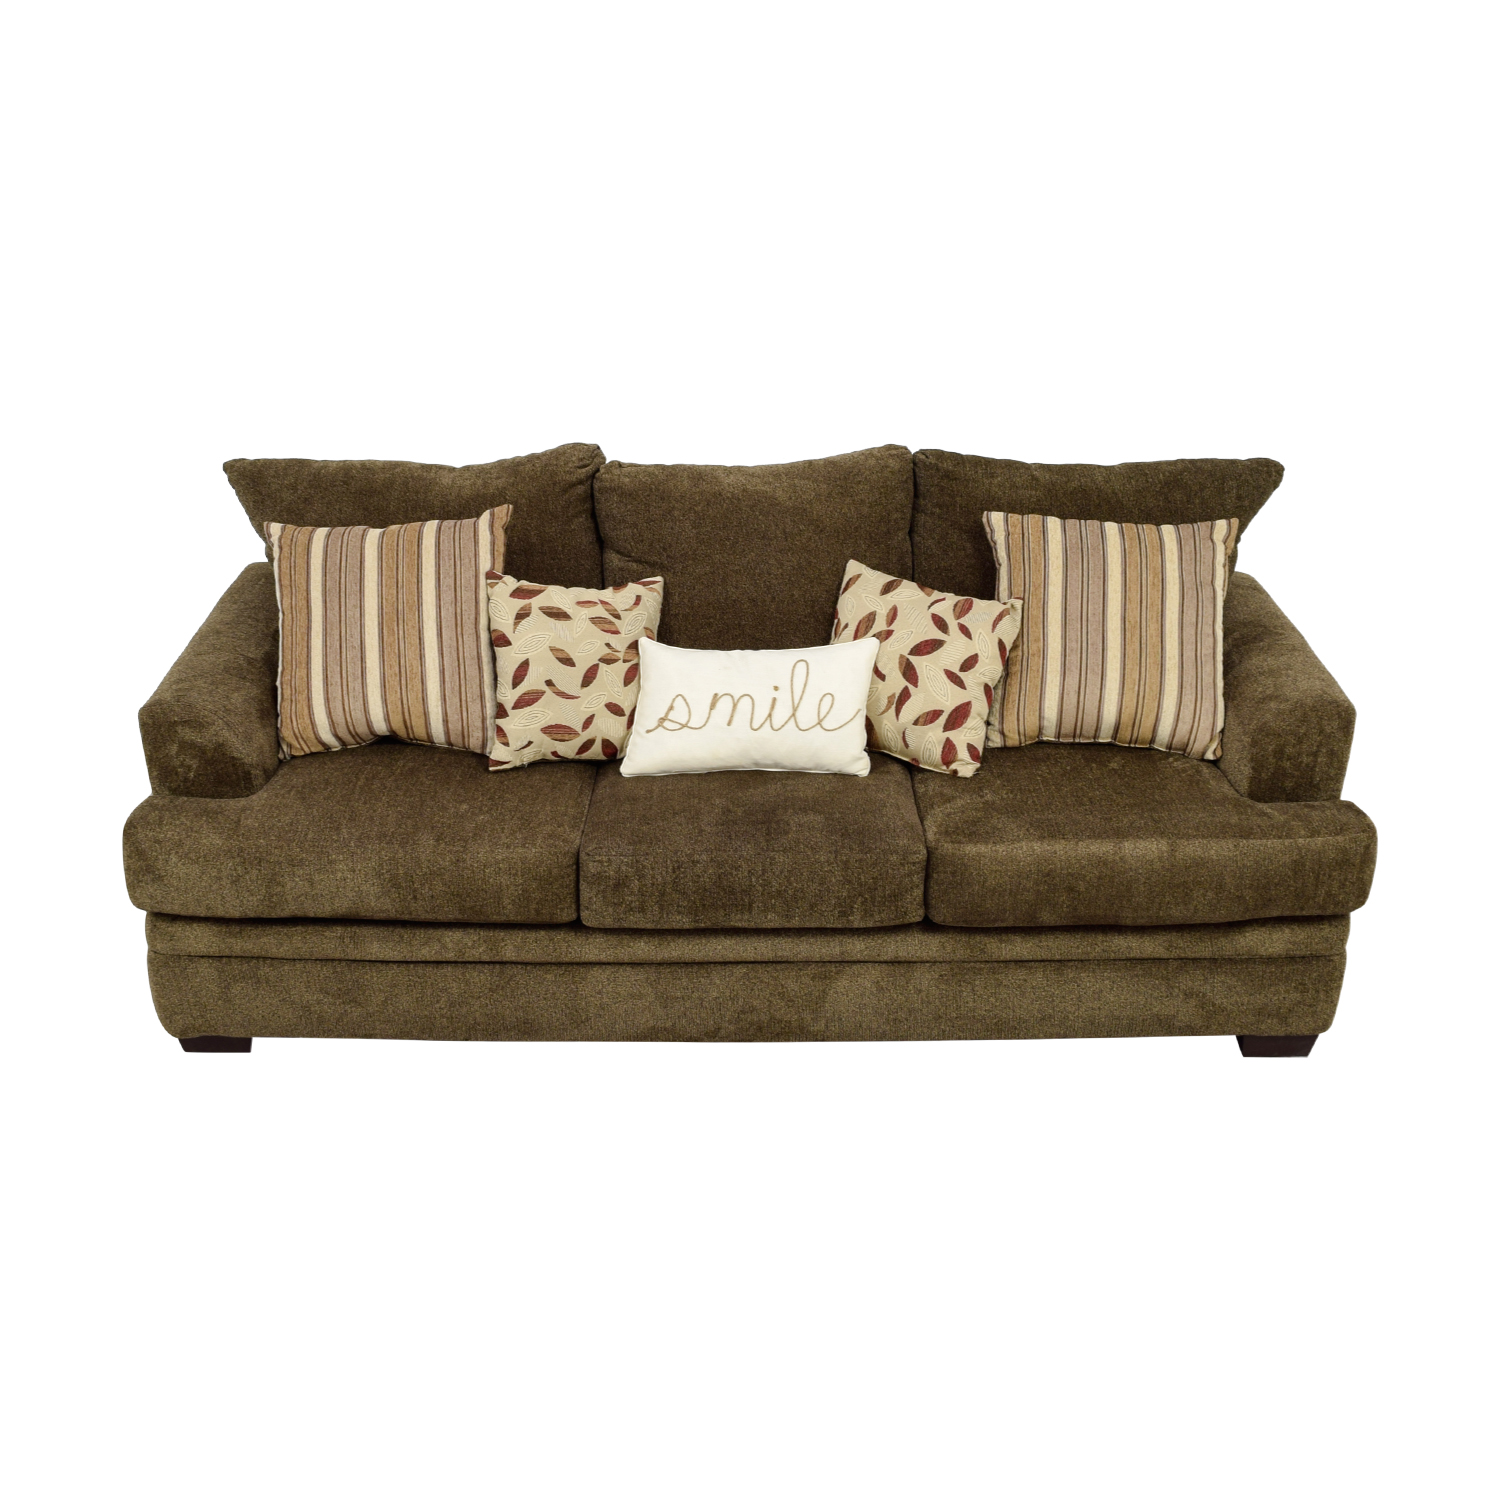 Bob's Furniture Bob's Furniture Miranda Brown Three-Cushion Sofa